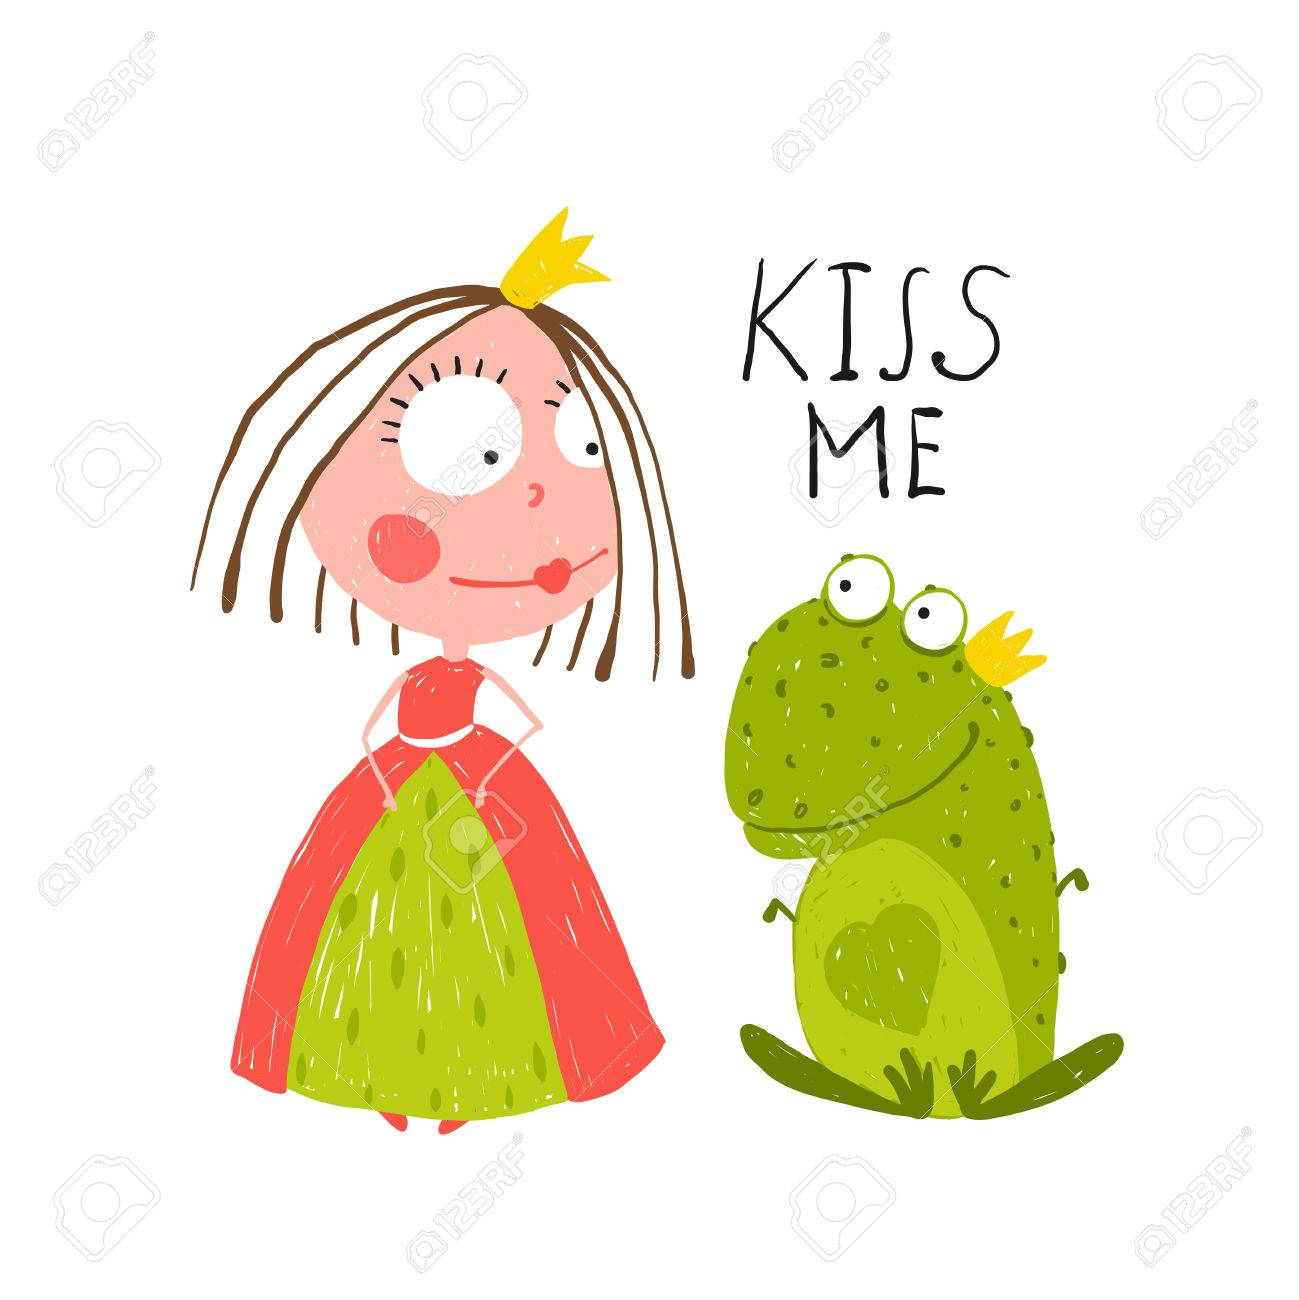 Baby Princess and Frog Asking for Kiss. Kids love story cute and fun colored illustration. - 40870108